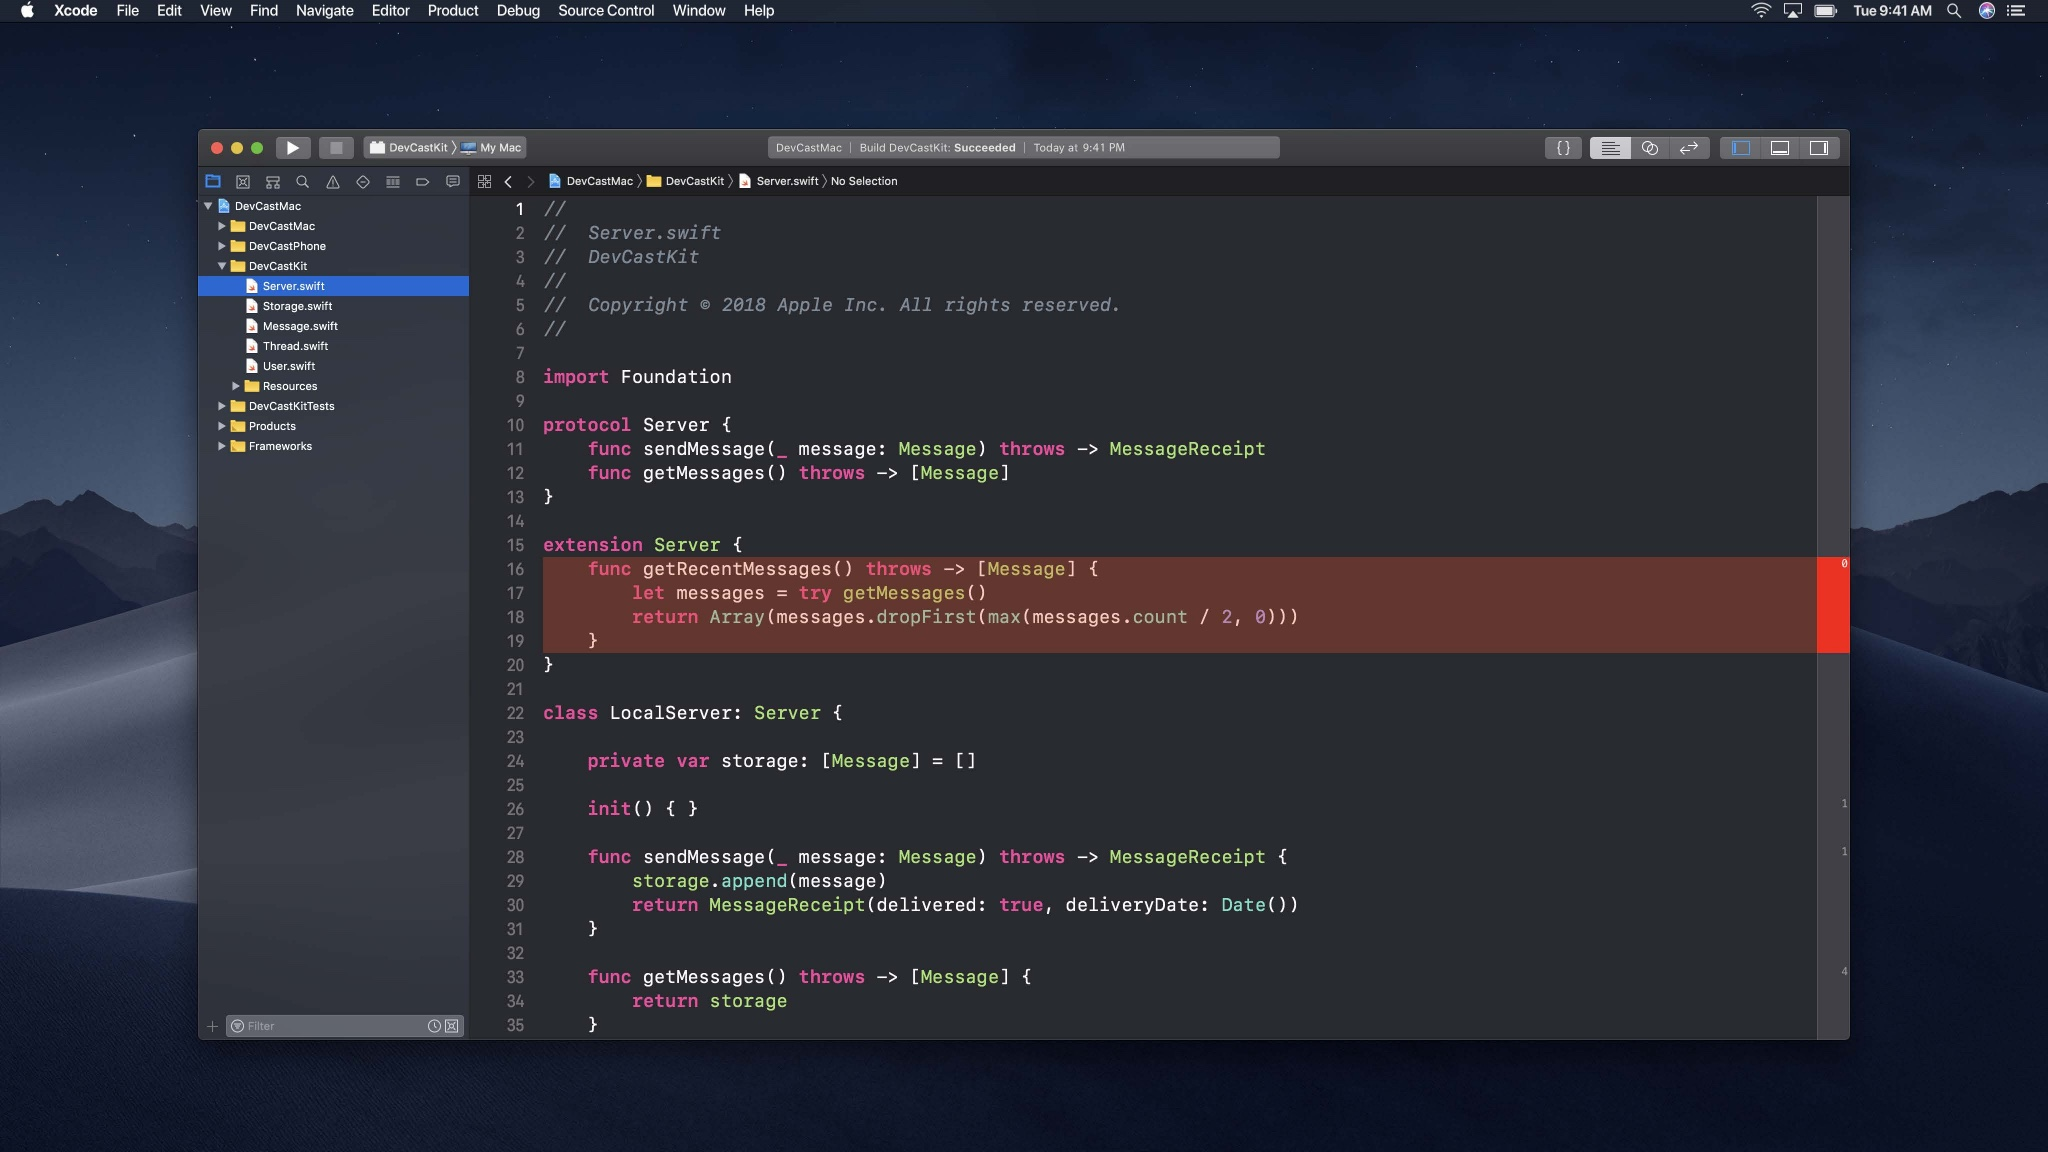 Couverture de code - WWDC 2018 session 403, image Apple